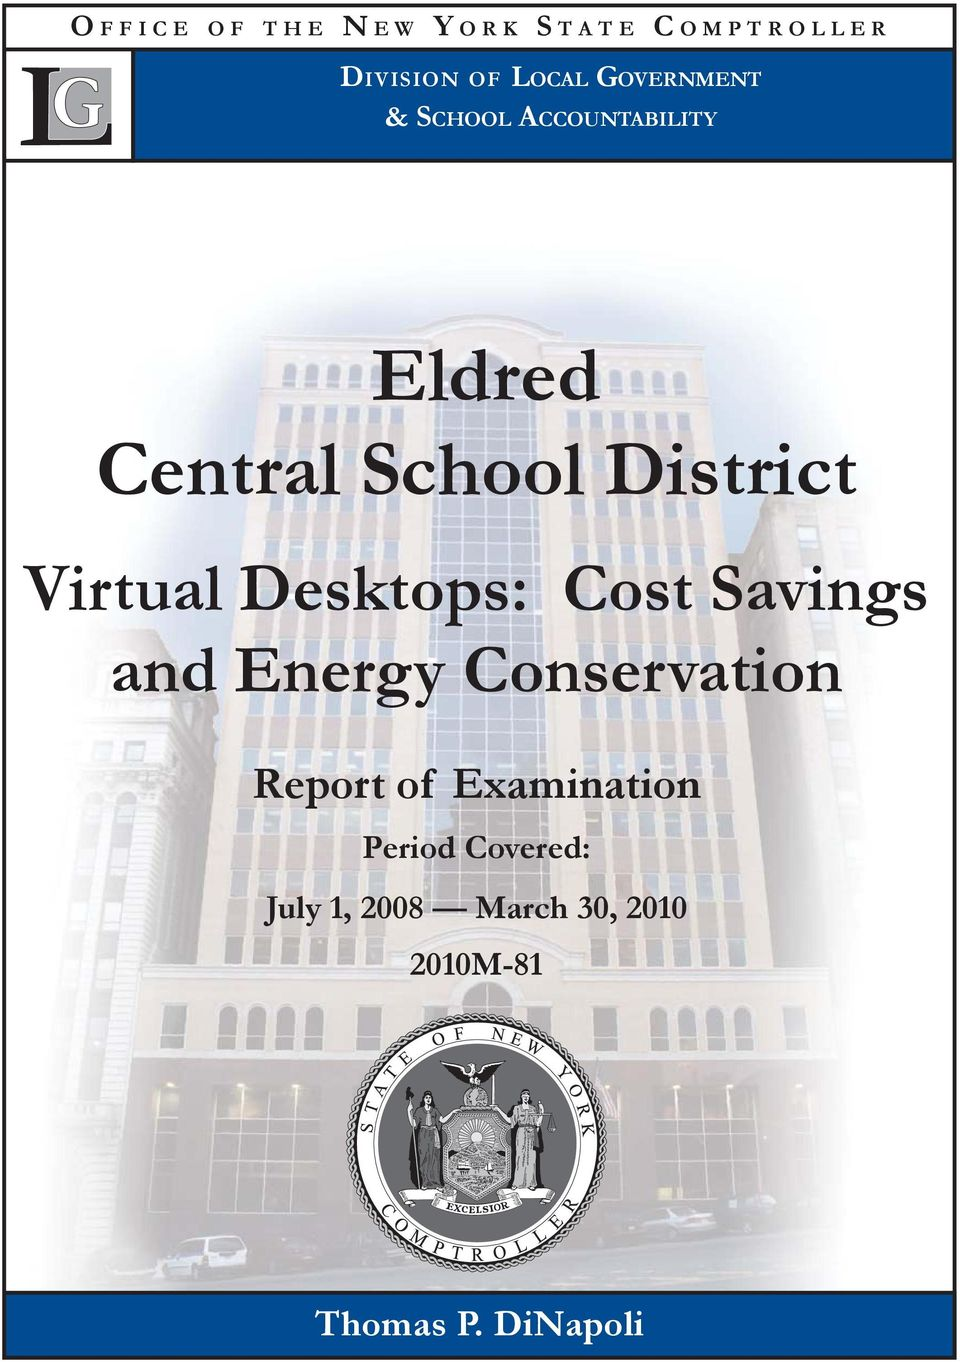 Virtual Desktops: Cost Savings and Energy Conservation Report of